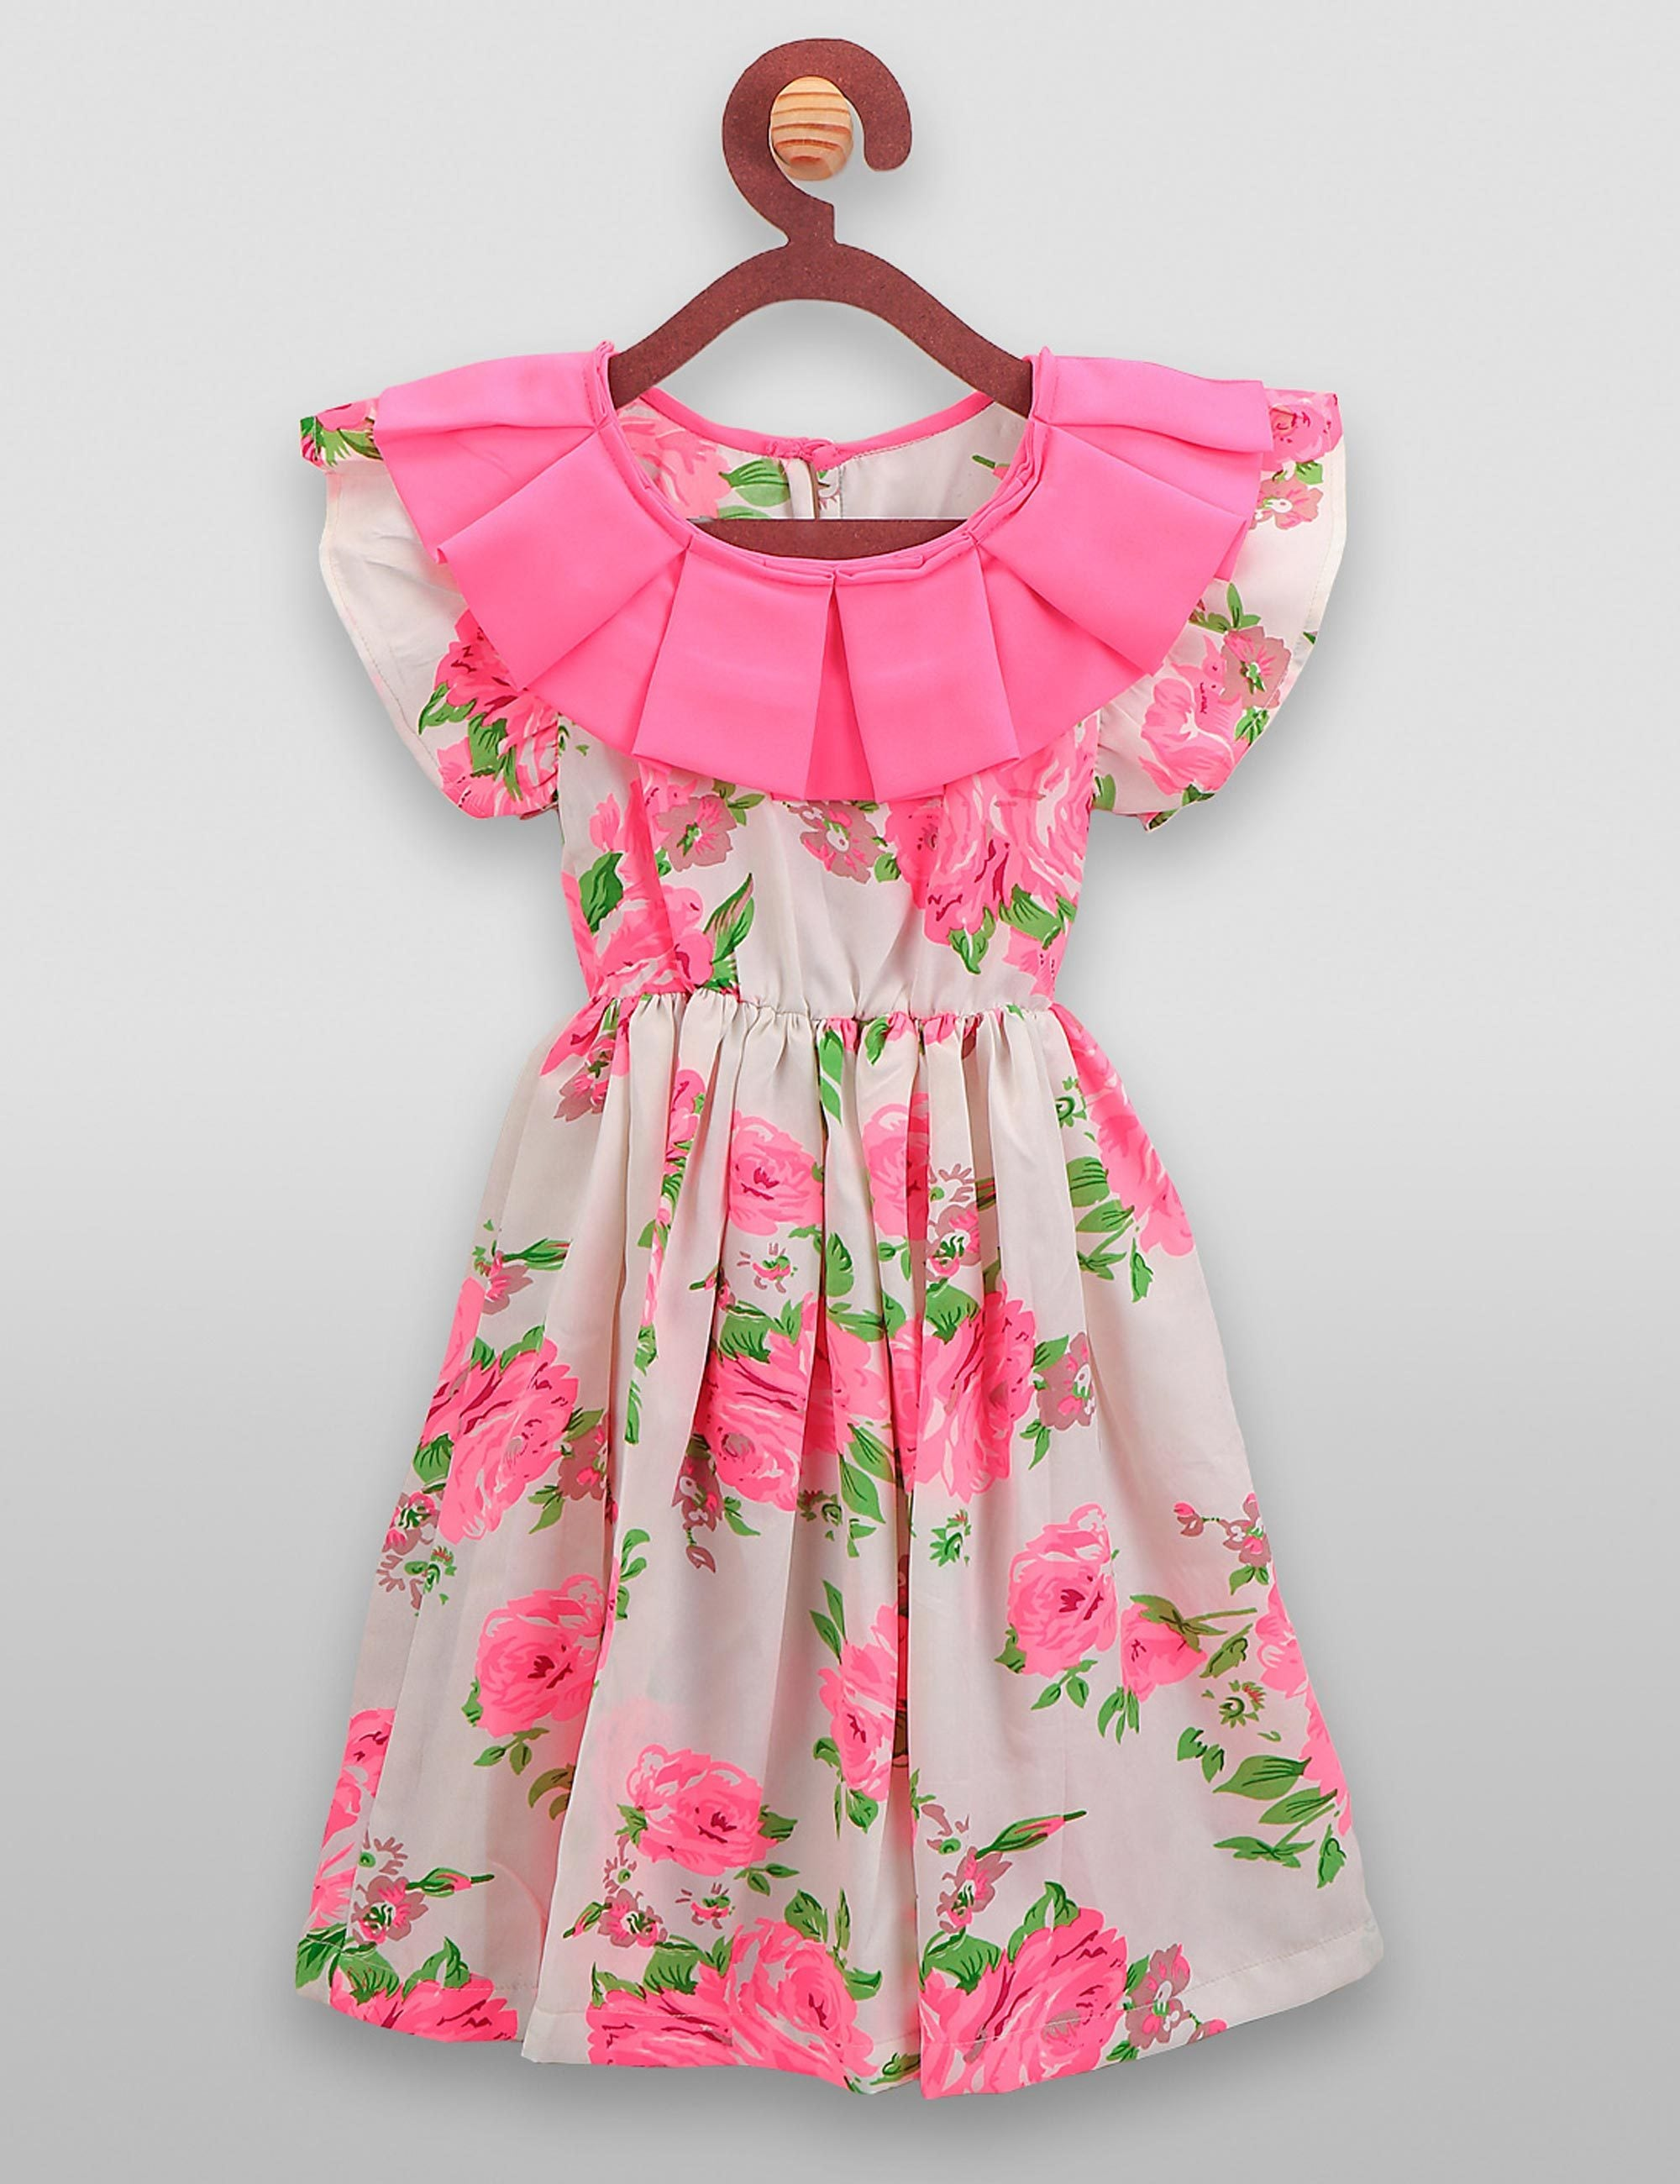 Neon Pink Flowers Frilly Dress for Girls